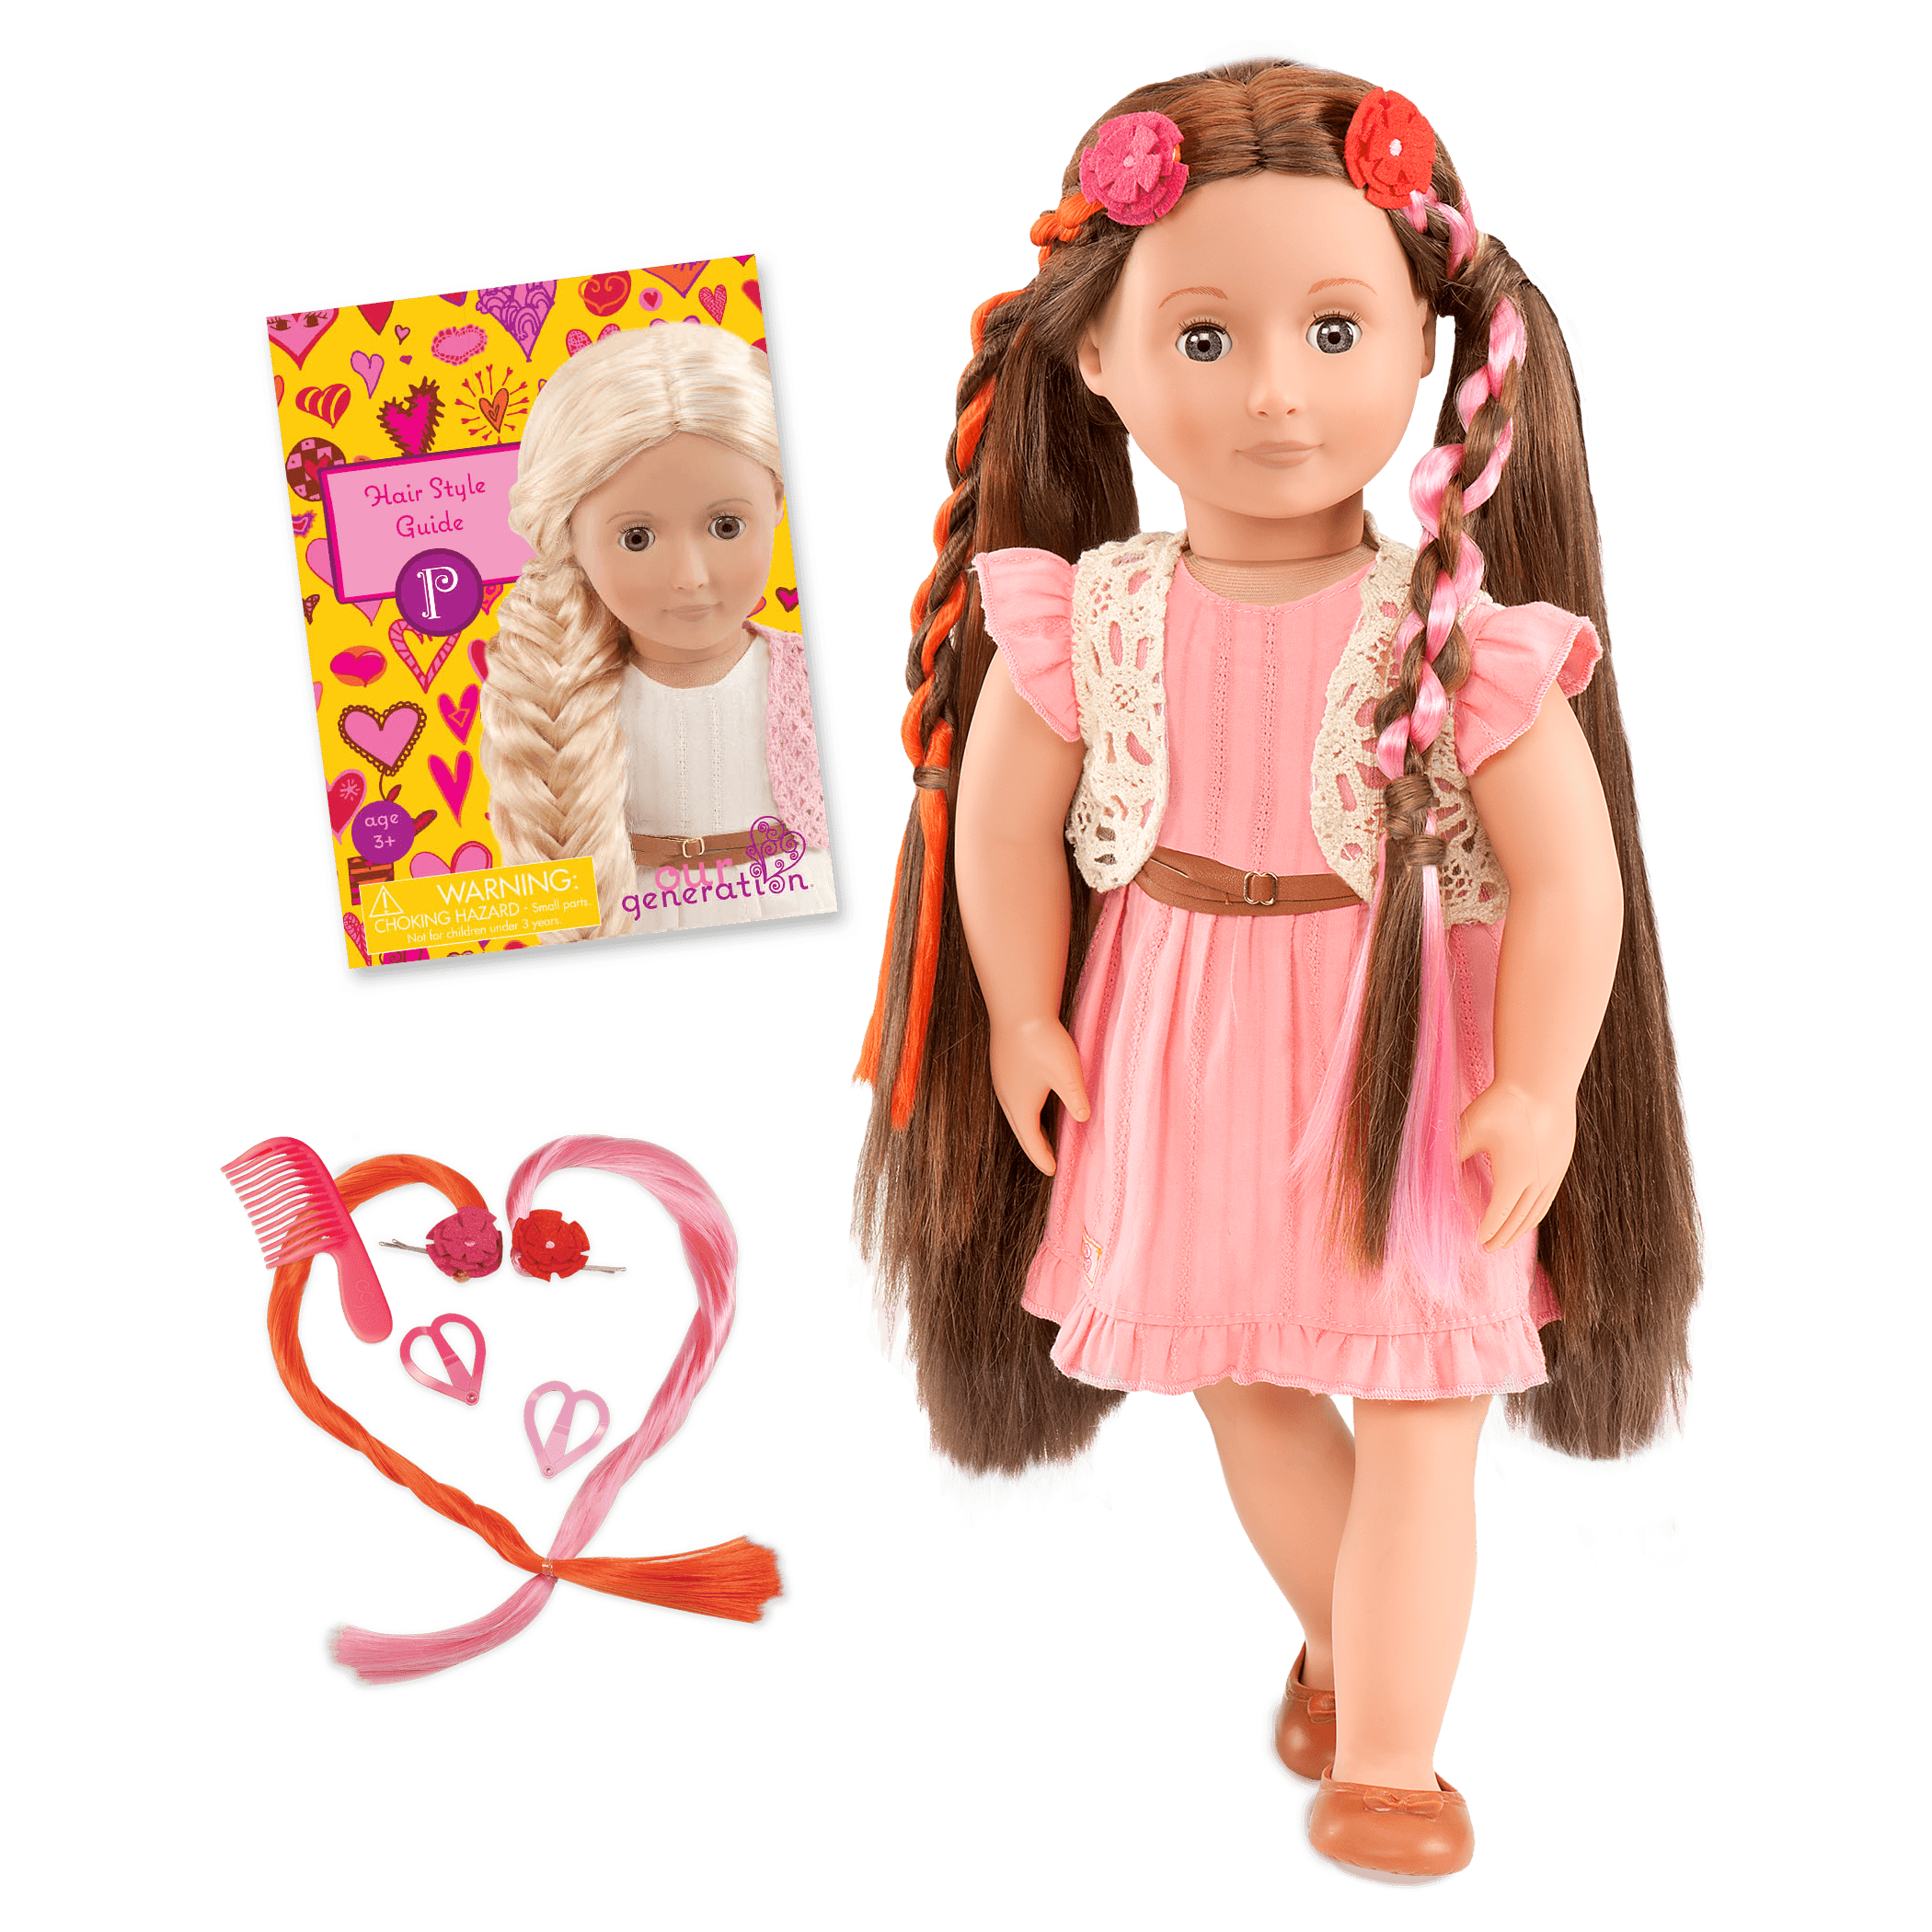 Parker 18-inch Hairplay Doll with Pink Dress